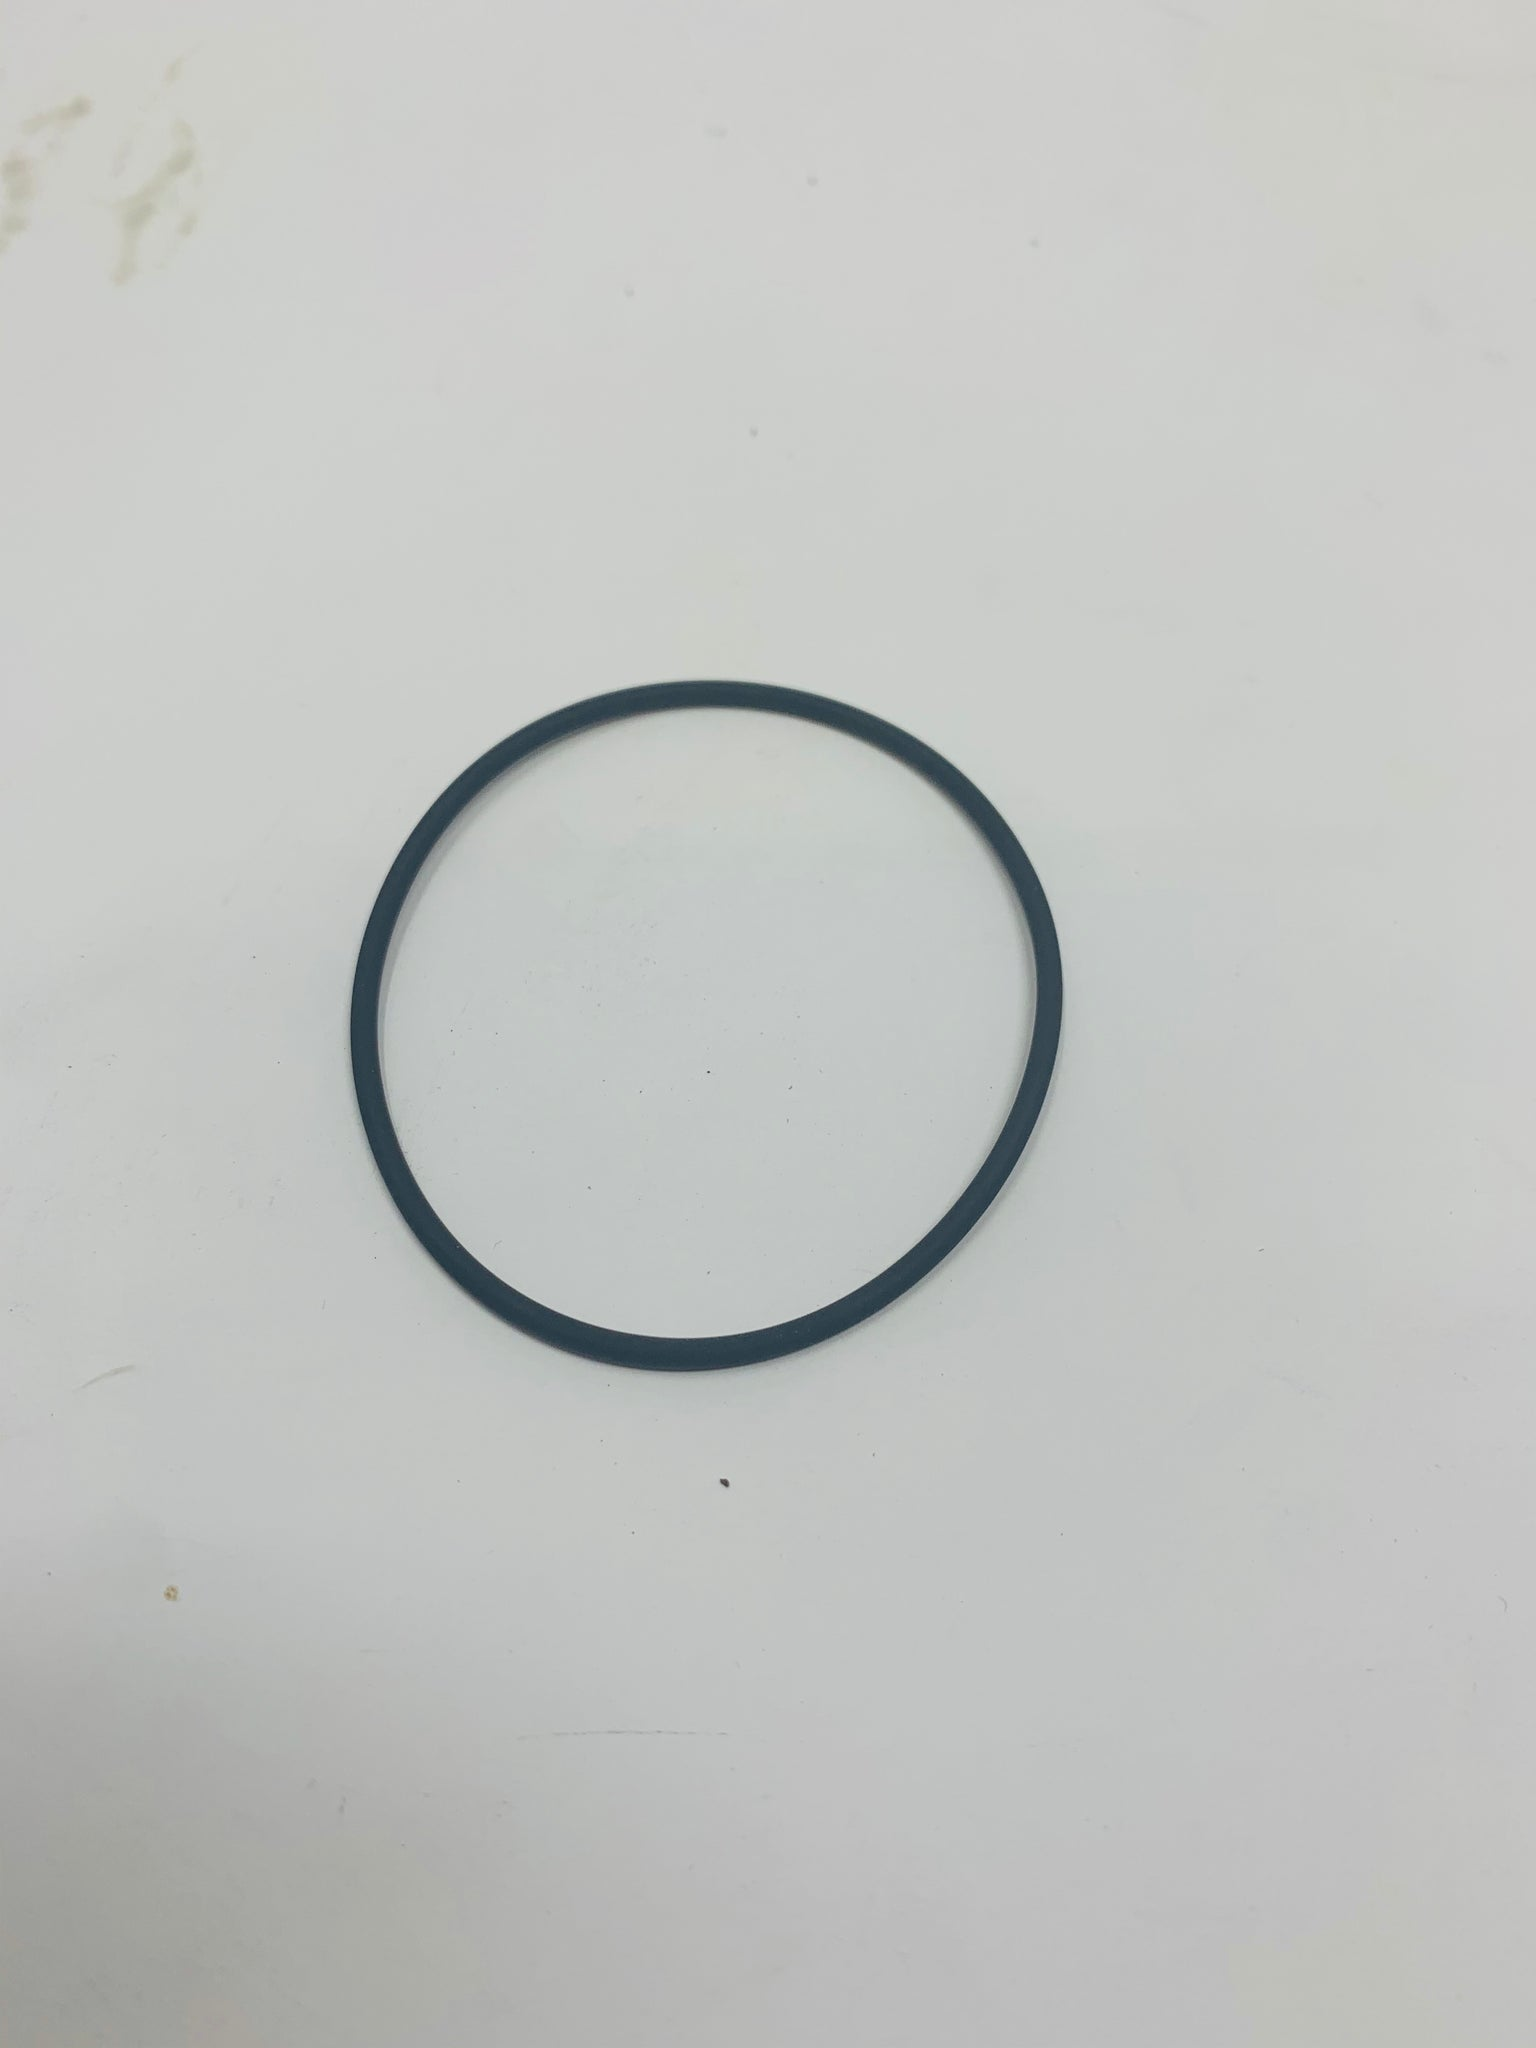 O-Ring/Gasket for Air Conception Bladder Tank